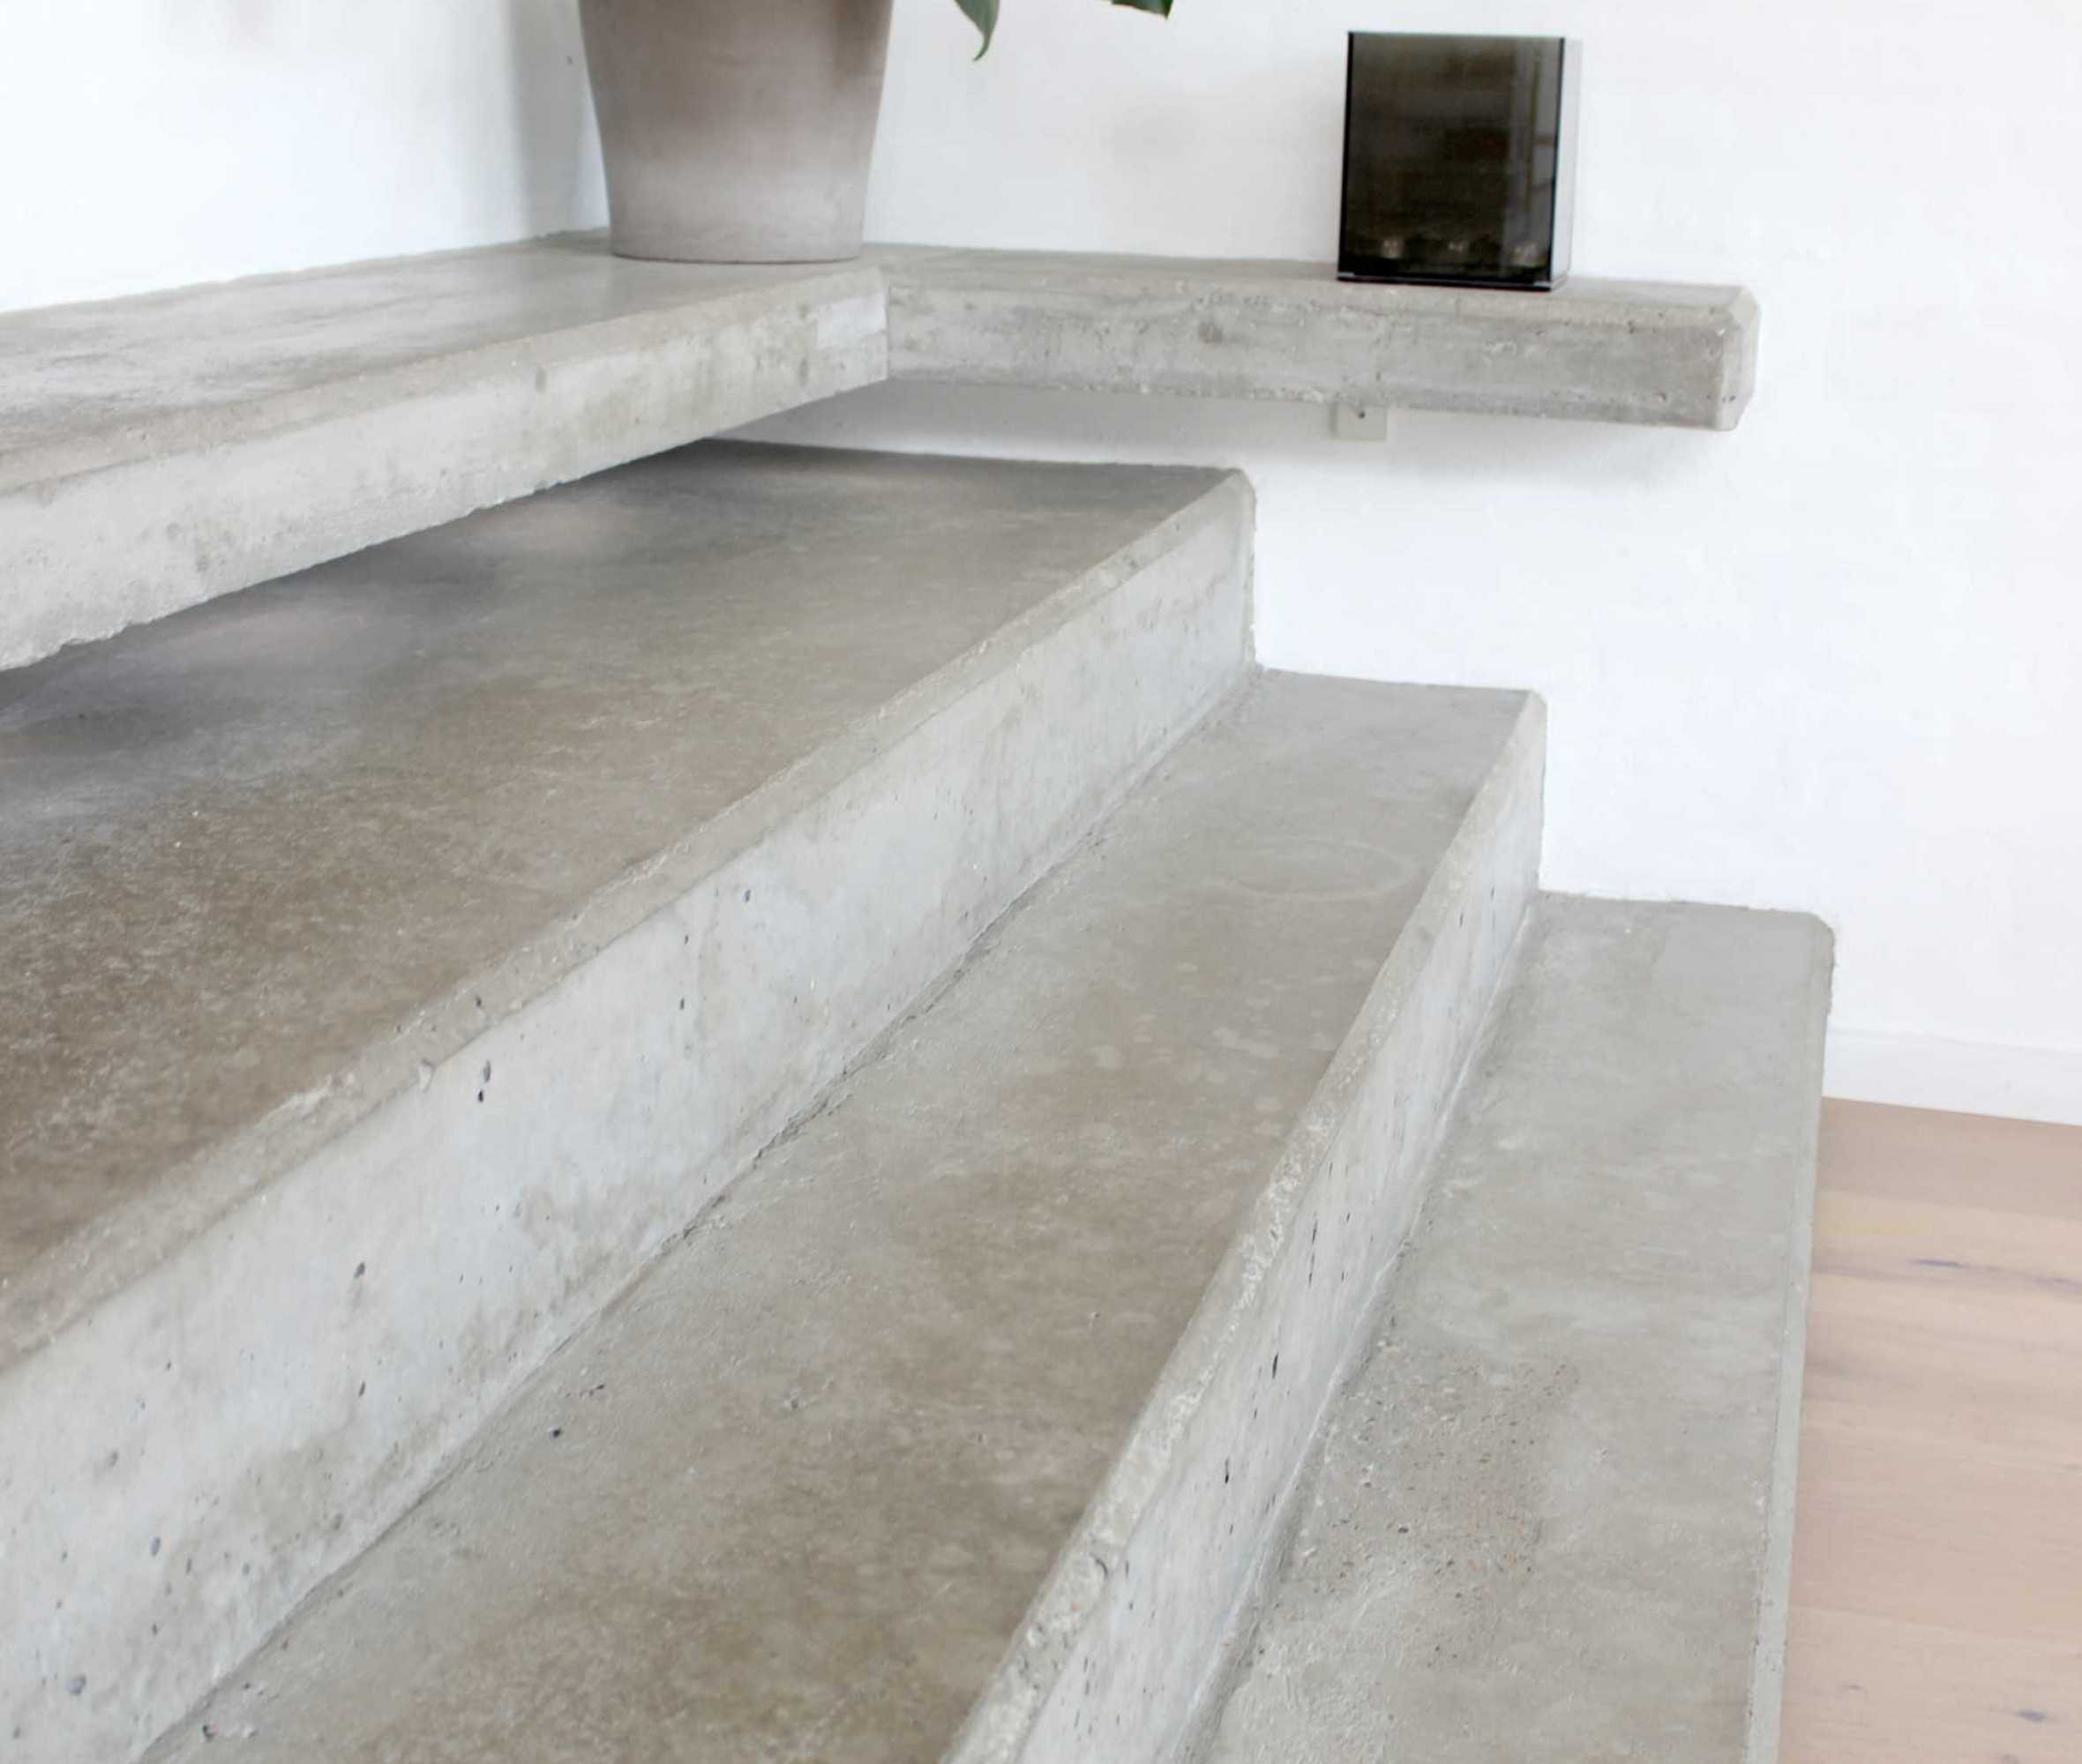 Picture of: Herning Murerforretning Aps Reference Trappe I Beton